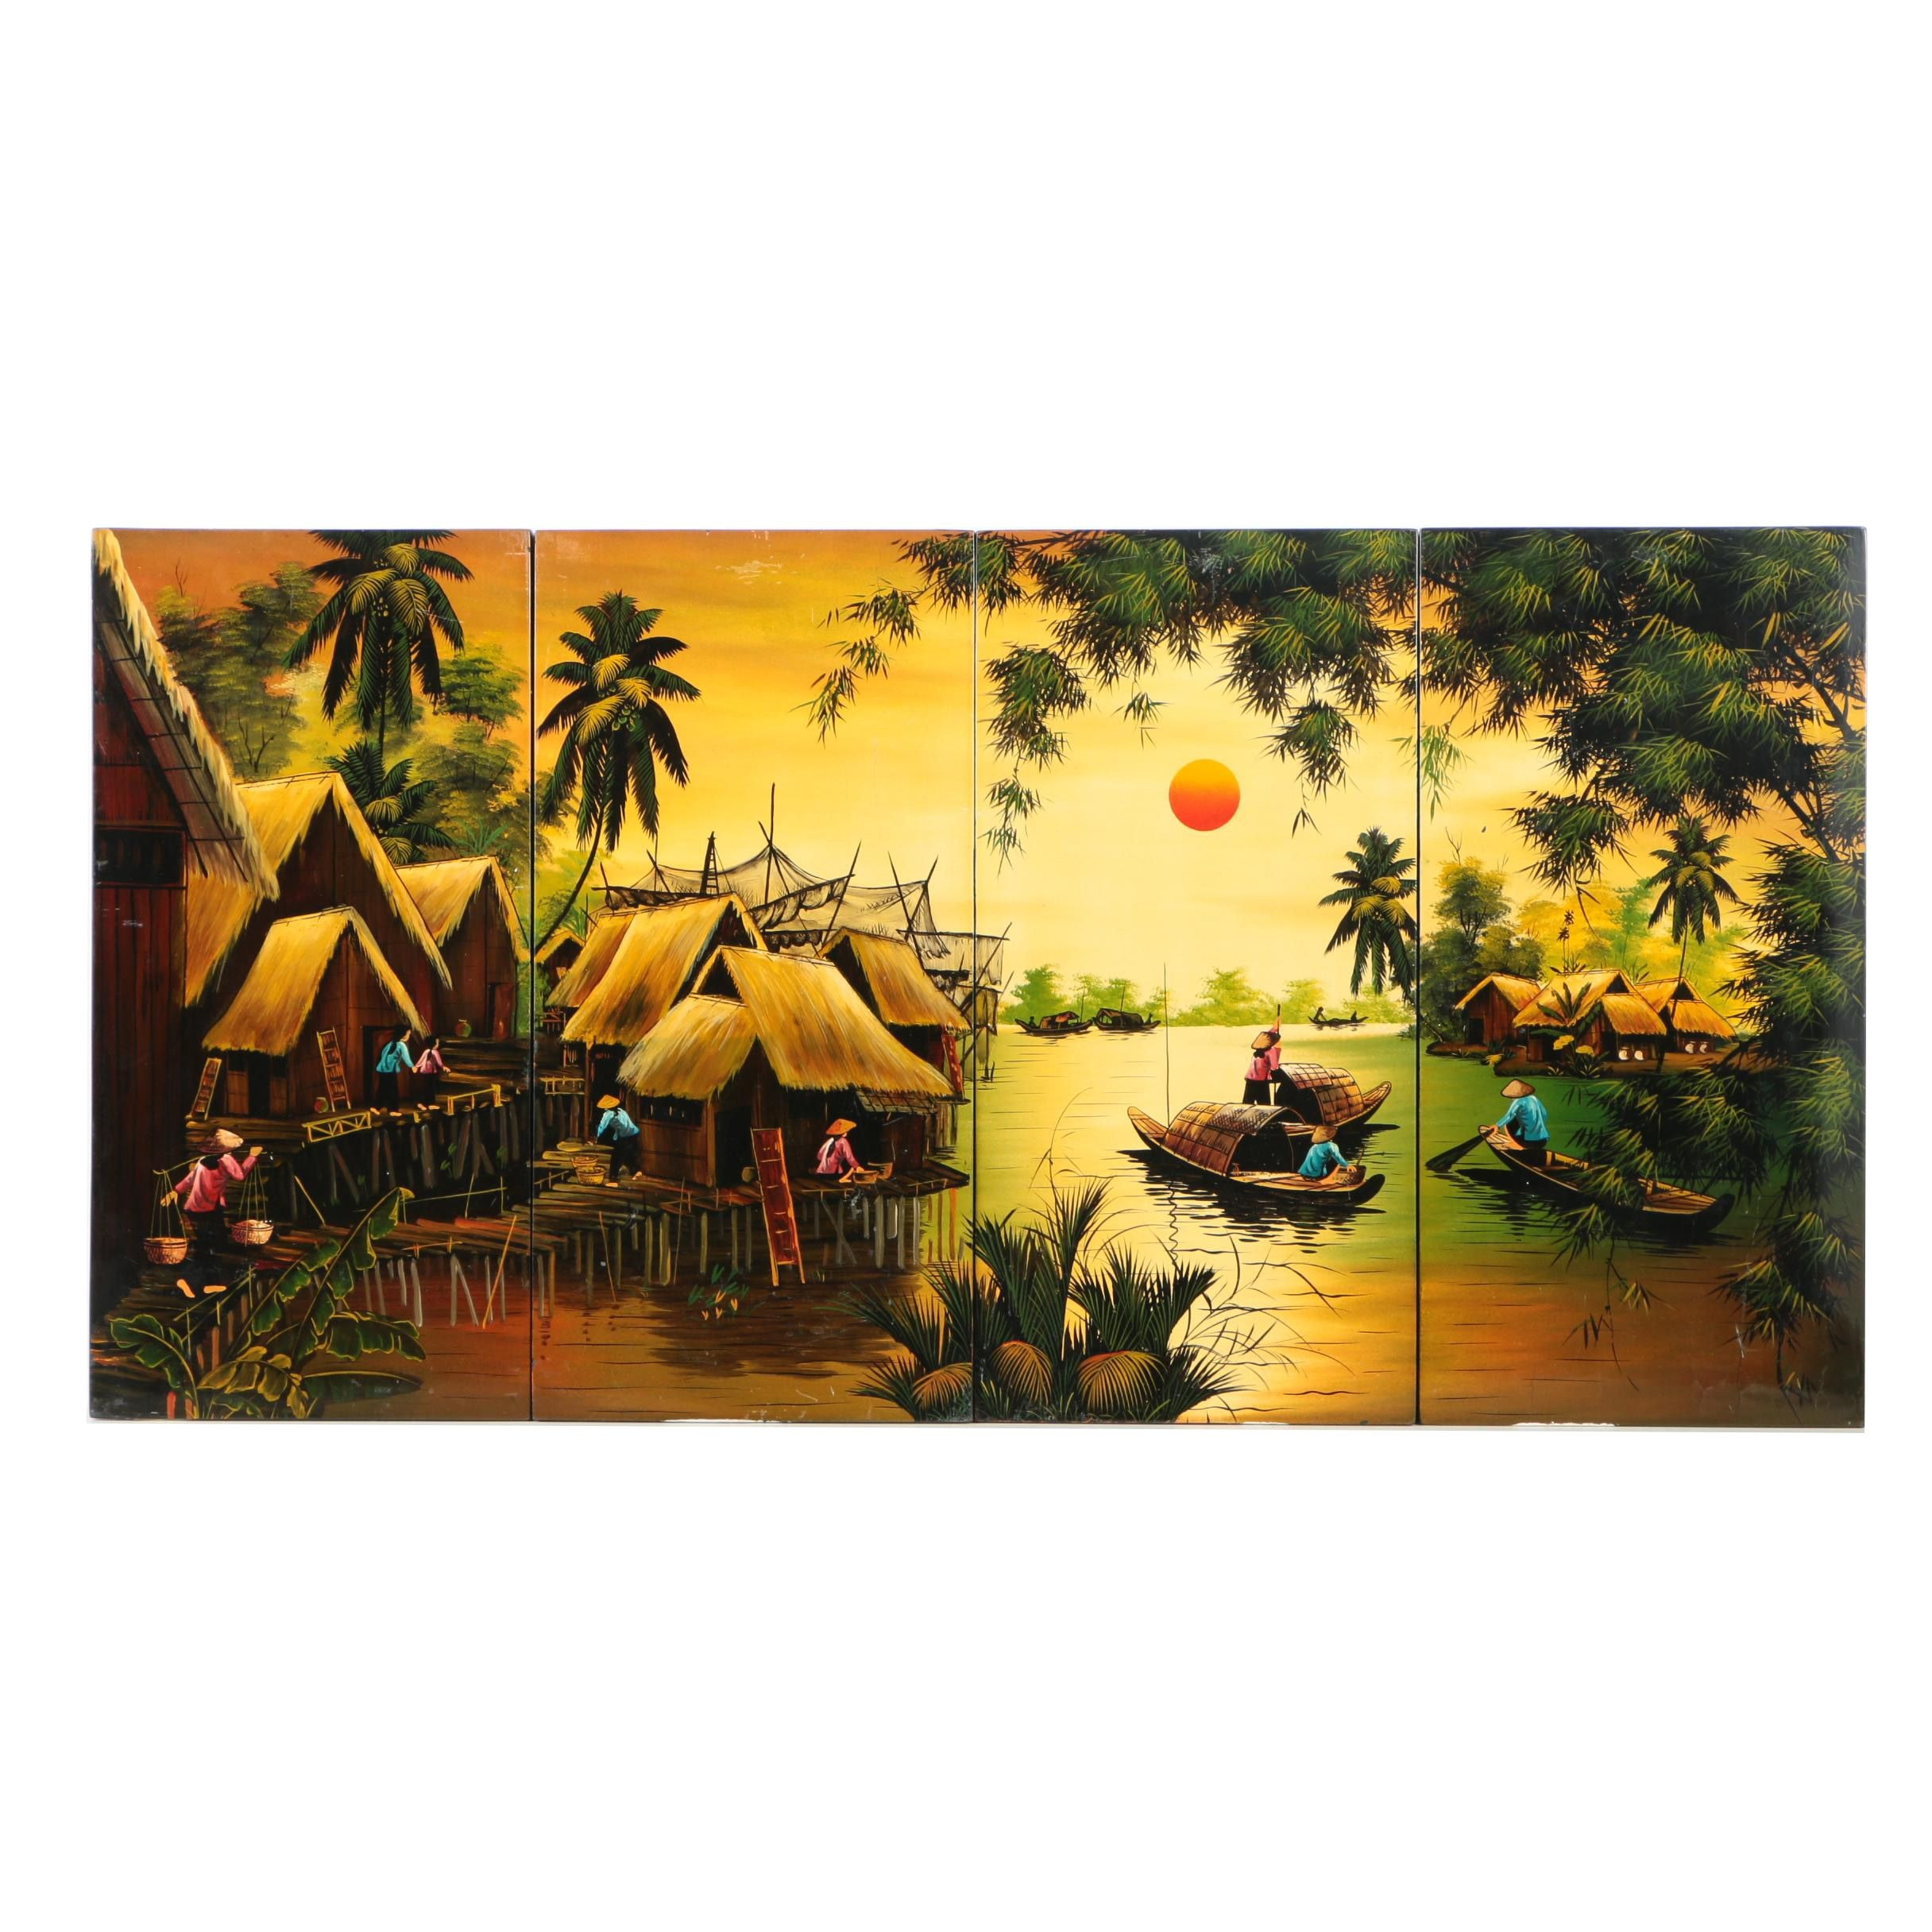 Quadriptych Oil Painting on Wood Panels of a South East Asian River Landscape